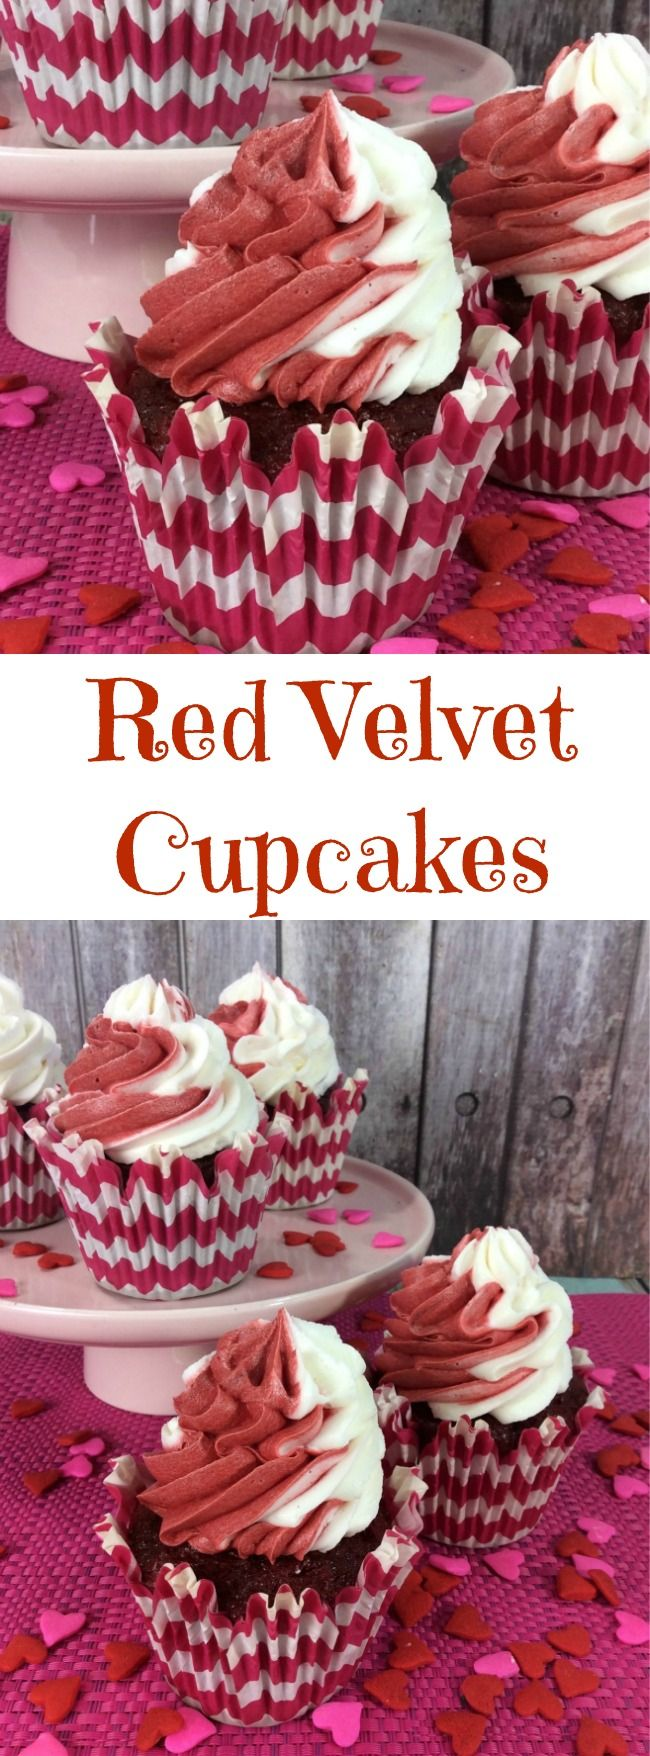 1000+ images about Cupcakes on Pinterest | Kahlua cupcakes, Car bomb ...